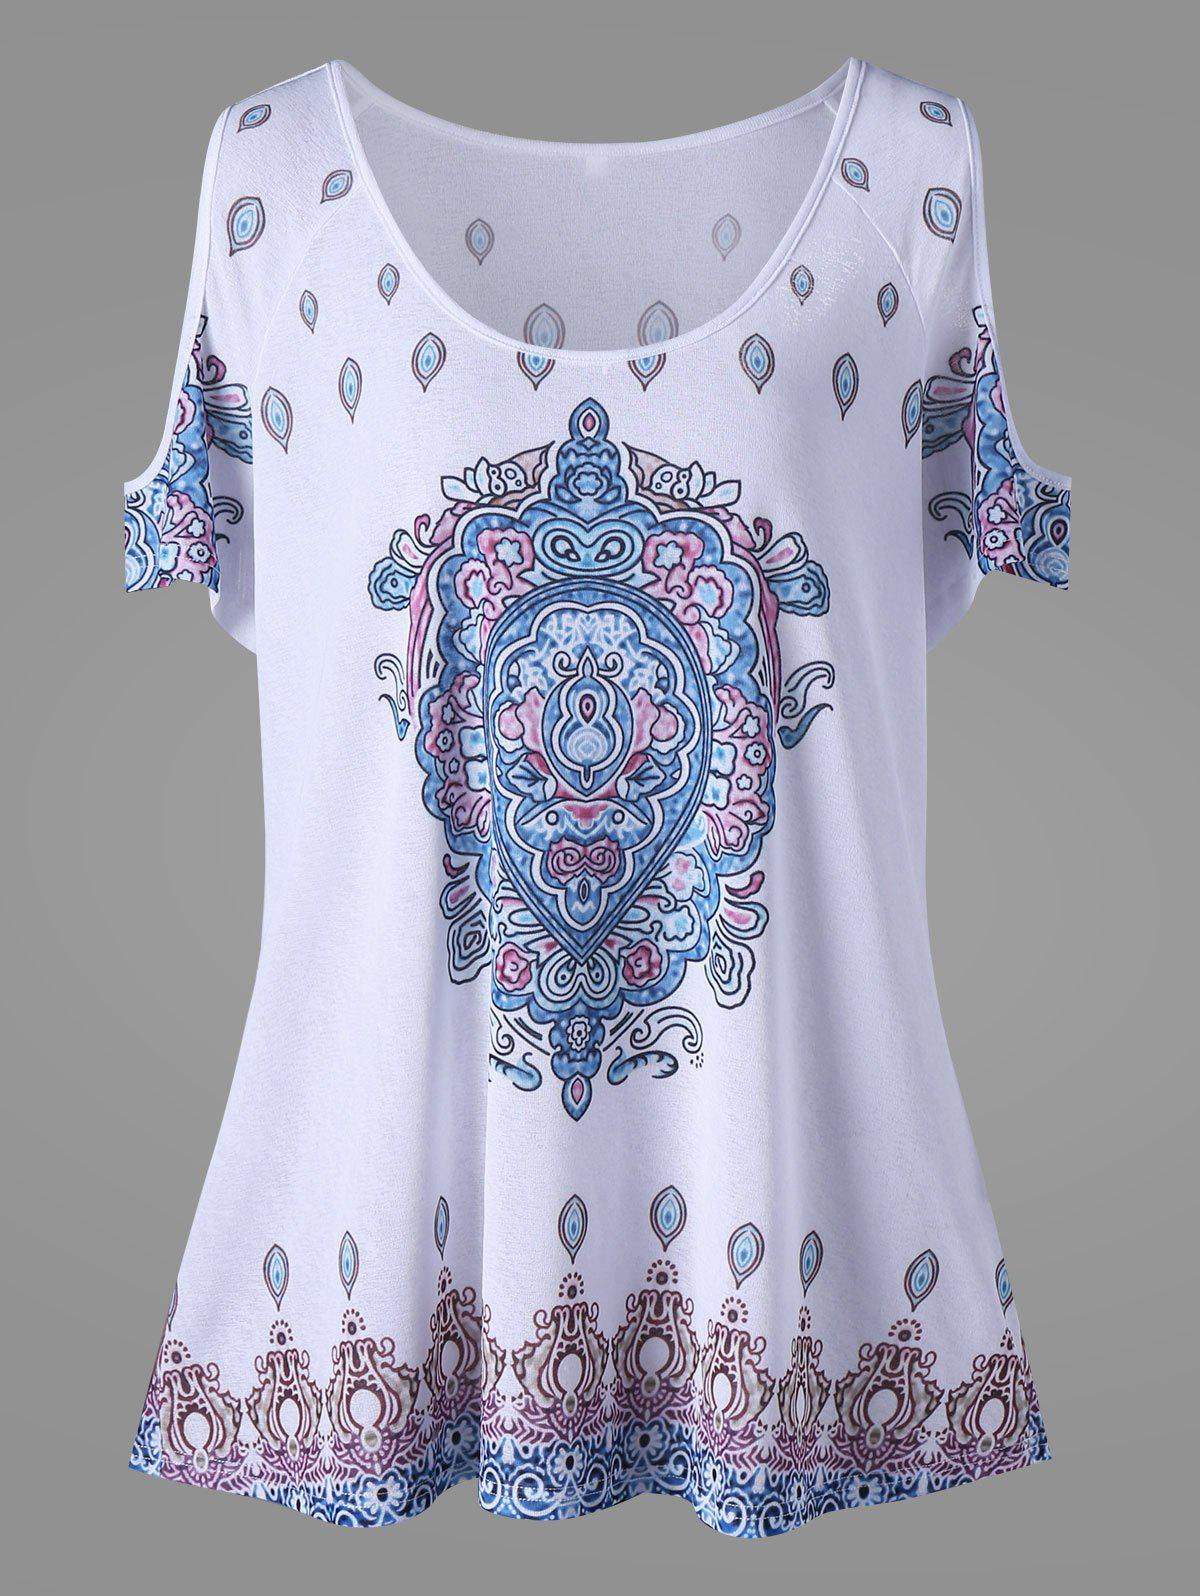 Cold Shoulder Tribe Print Plus Size TopWOMEN<br><br>Size: 5XL; Color: WHITE; Material: Polyester; Shirt Length: Regular; Sleeve Length: Short; Collar: Scoop Neck; Style: Fashion; Season: Fall,Spring,Summer; Pattern Type: Print; Weight: 0.2500kg; Package Contents: 1 x Top;